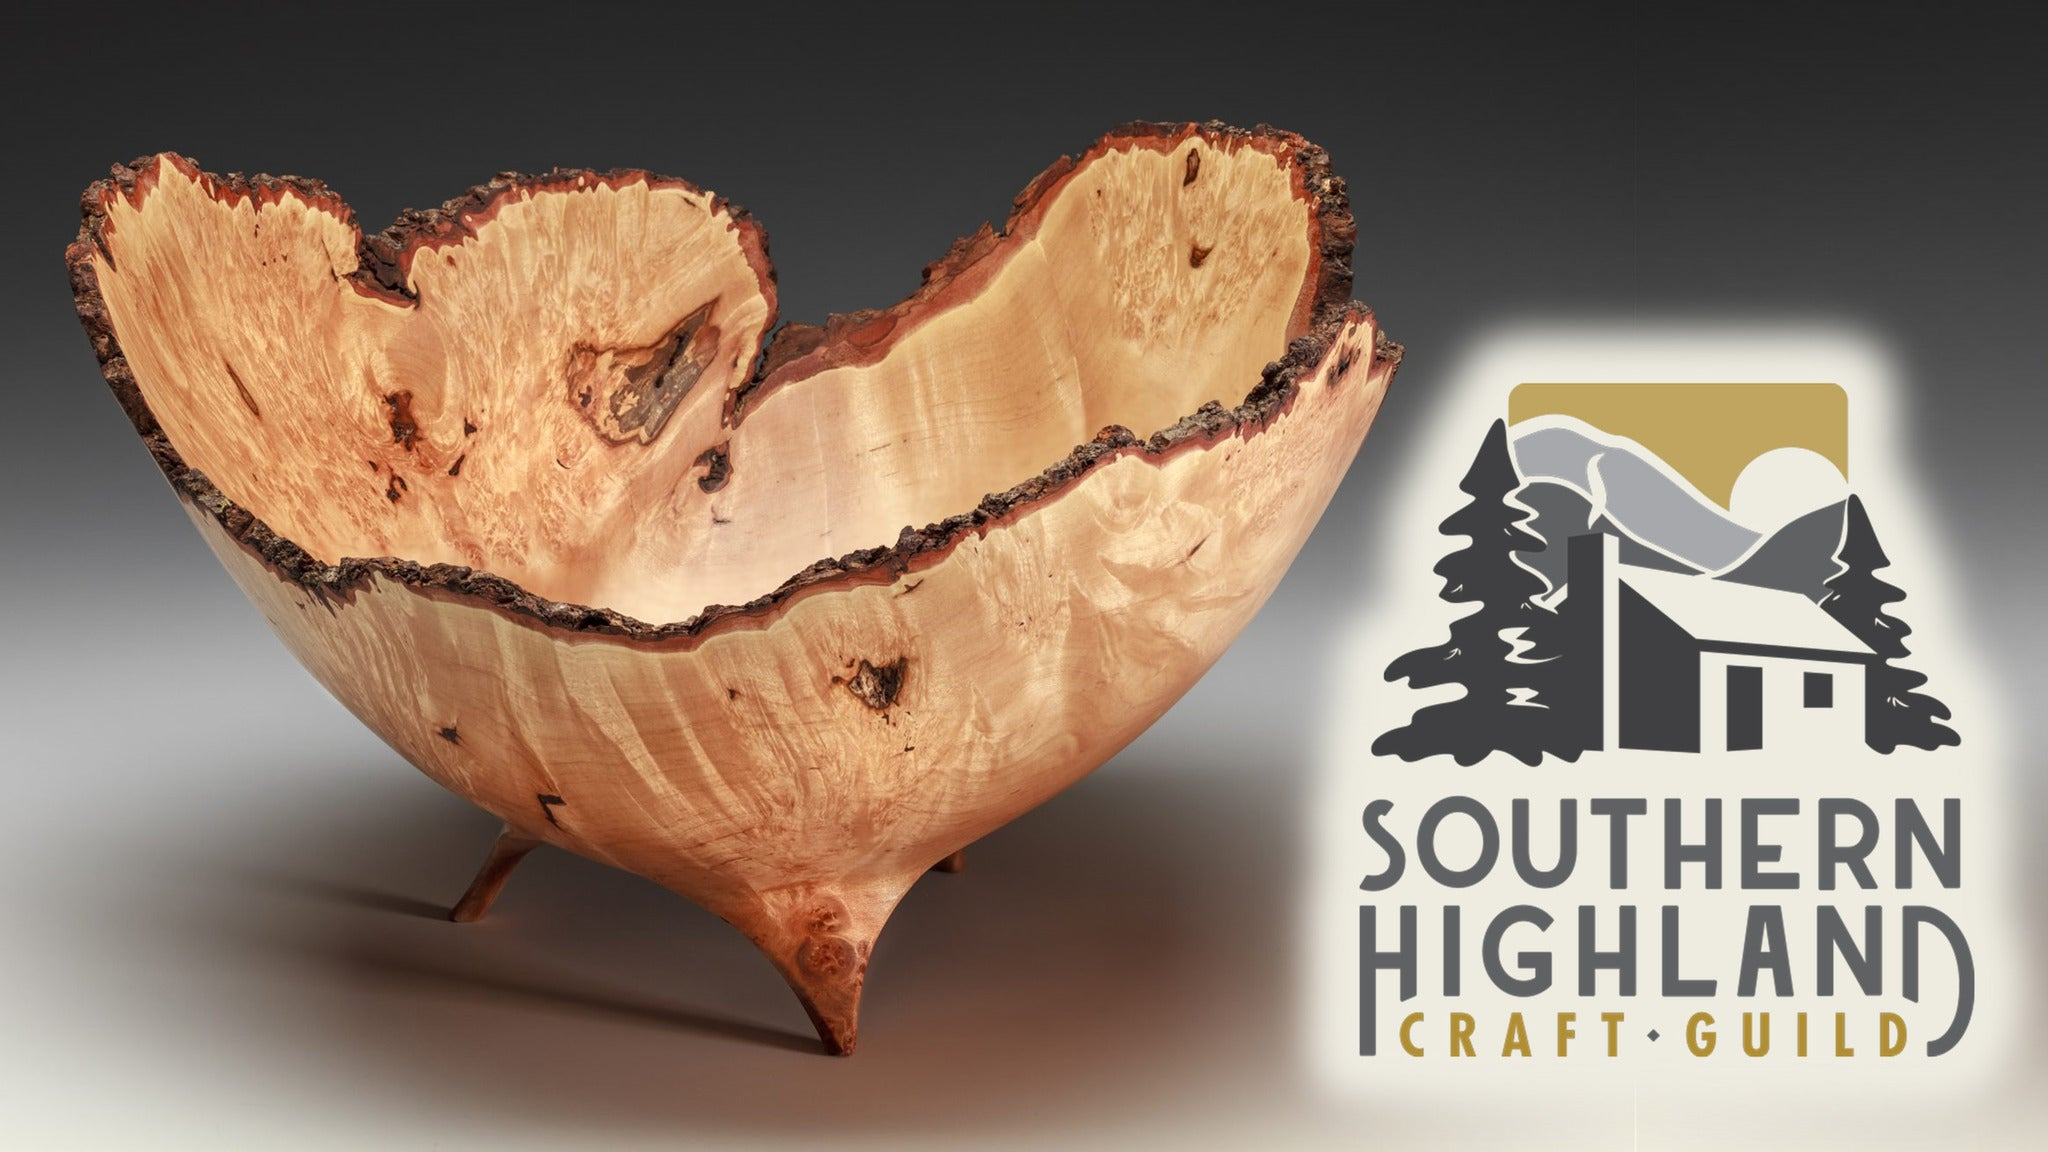 Craft Fair of the Southern Highlands - 4 DAY TICKET